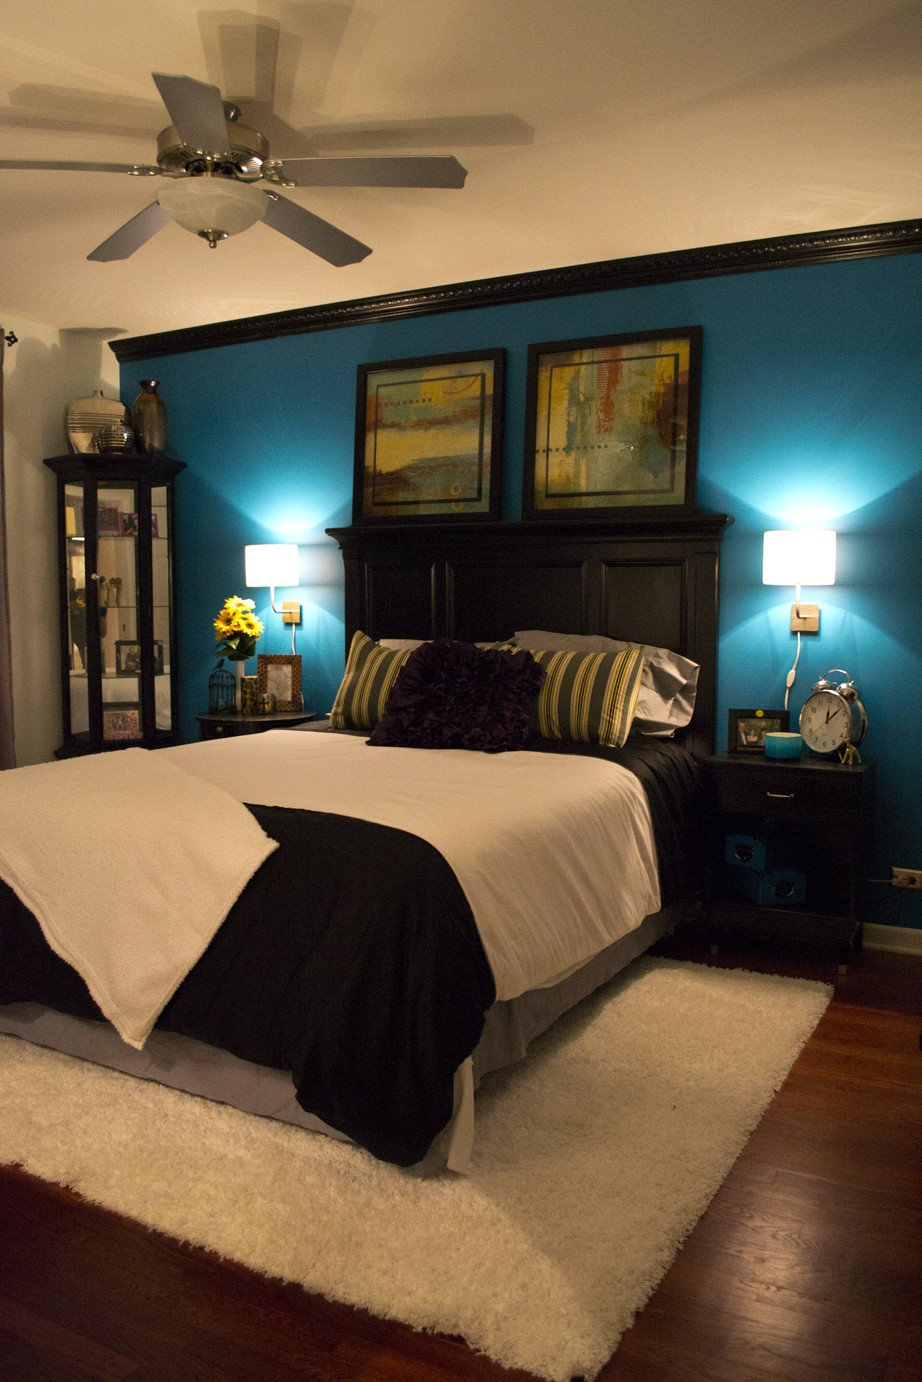 Teal and Brown Home Decor Luxury 25 Teal Bedroom Designs You Will Love to Copy Decoration Love